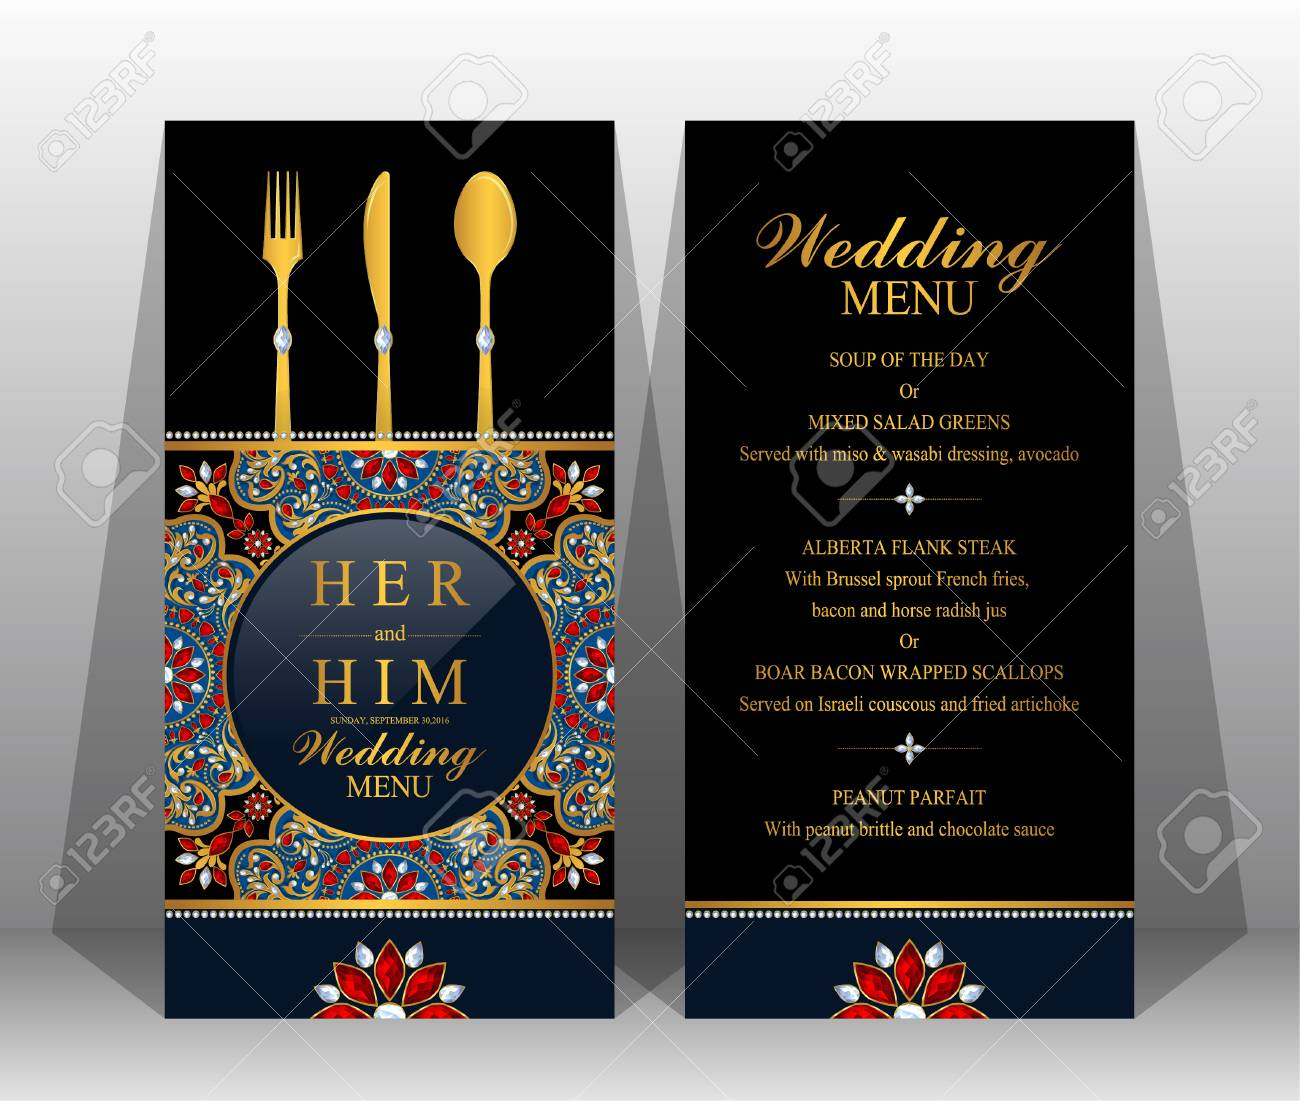 Menu Template On Wedding Reception Royalty Free Cliparts Vectors And Stock Illustration Image 89136688